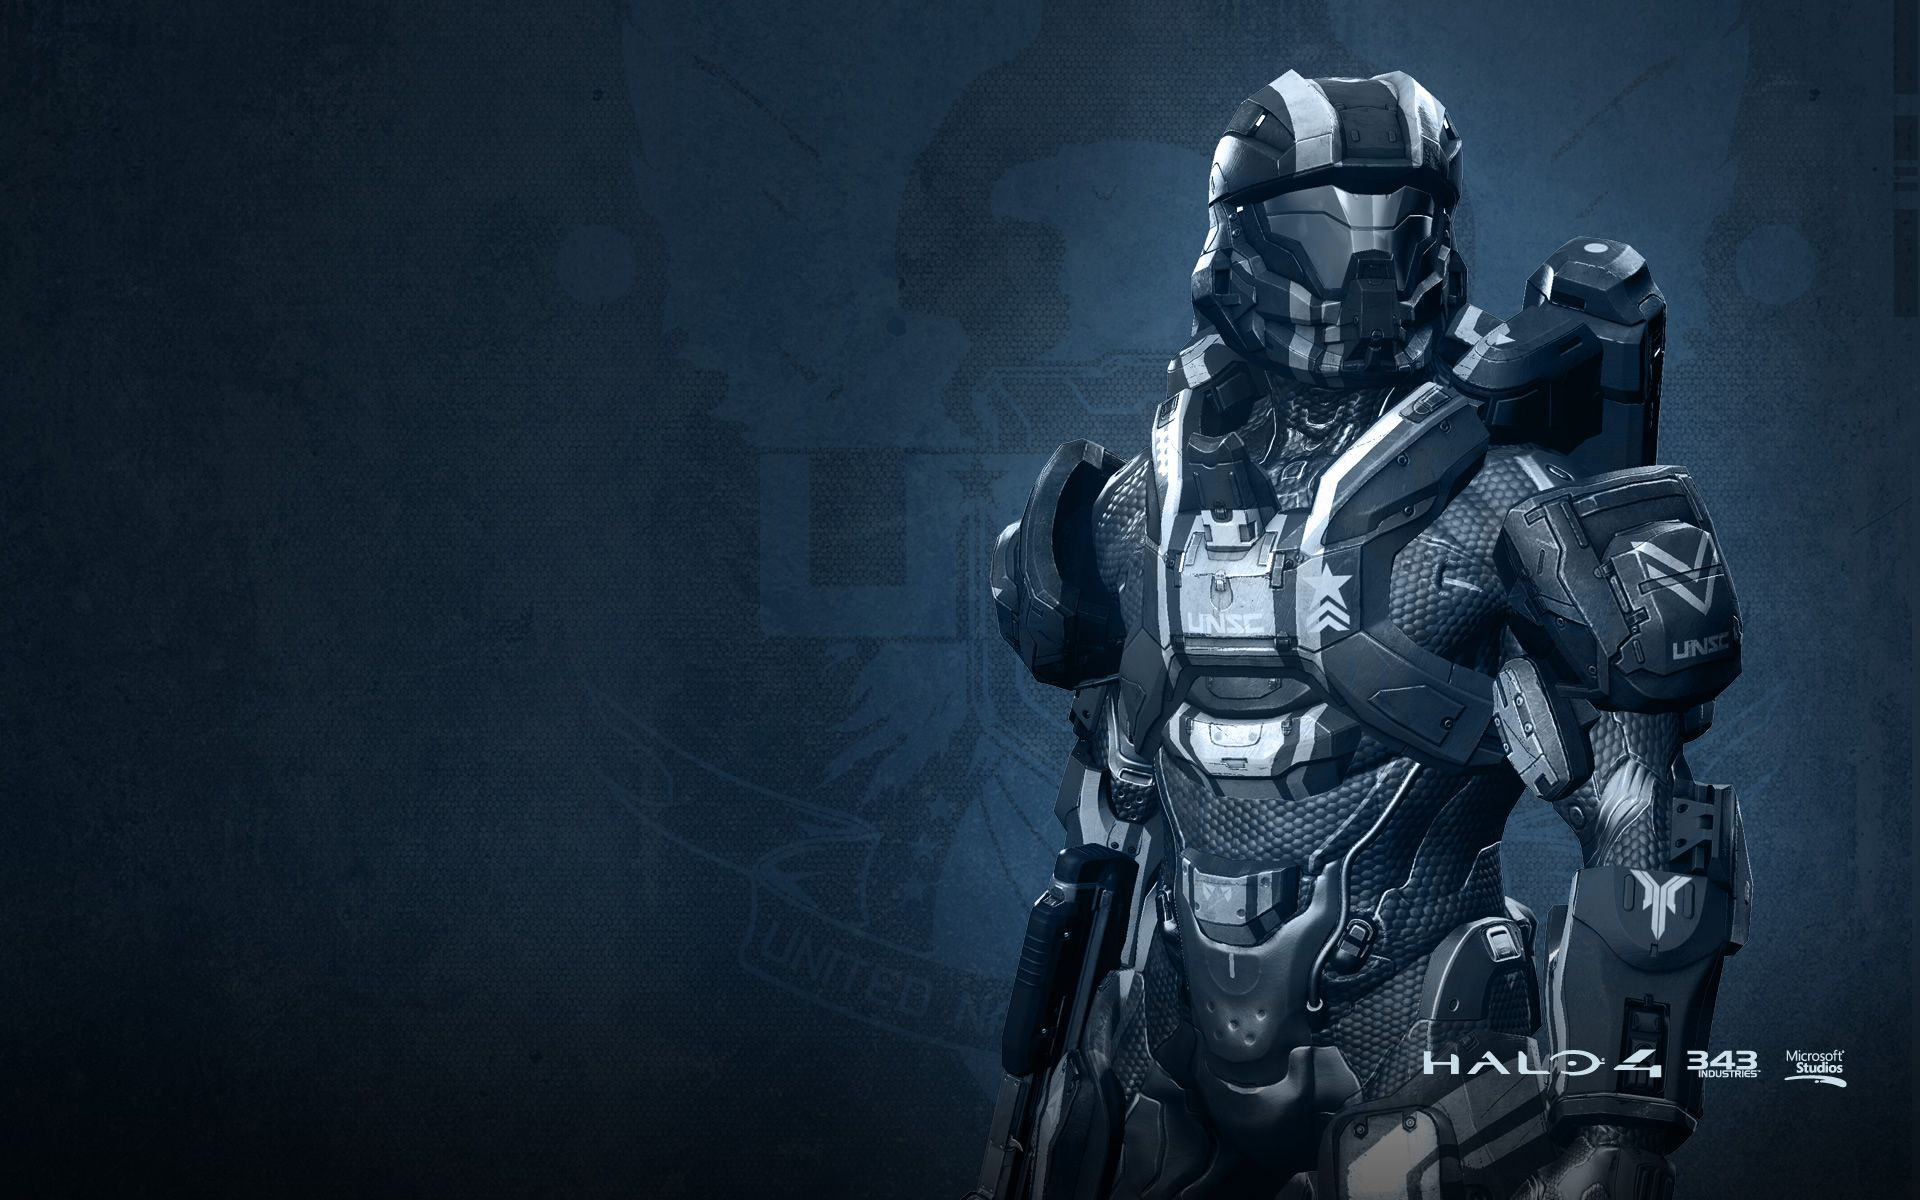 Halo Odst Hd Wallpapers Backgrounds Wallpaper 1920 1080 Halo Wallpapers 28 Wallpapers Adorable Wallpapers Halo Halo Spartan Halo Armor